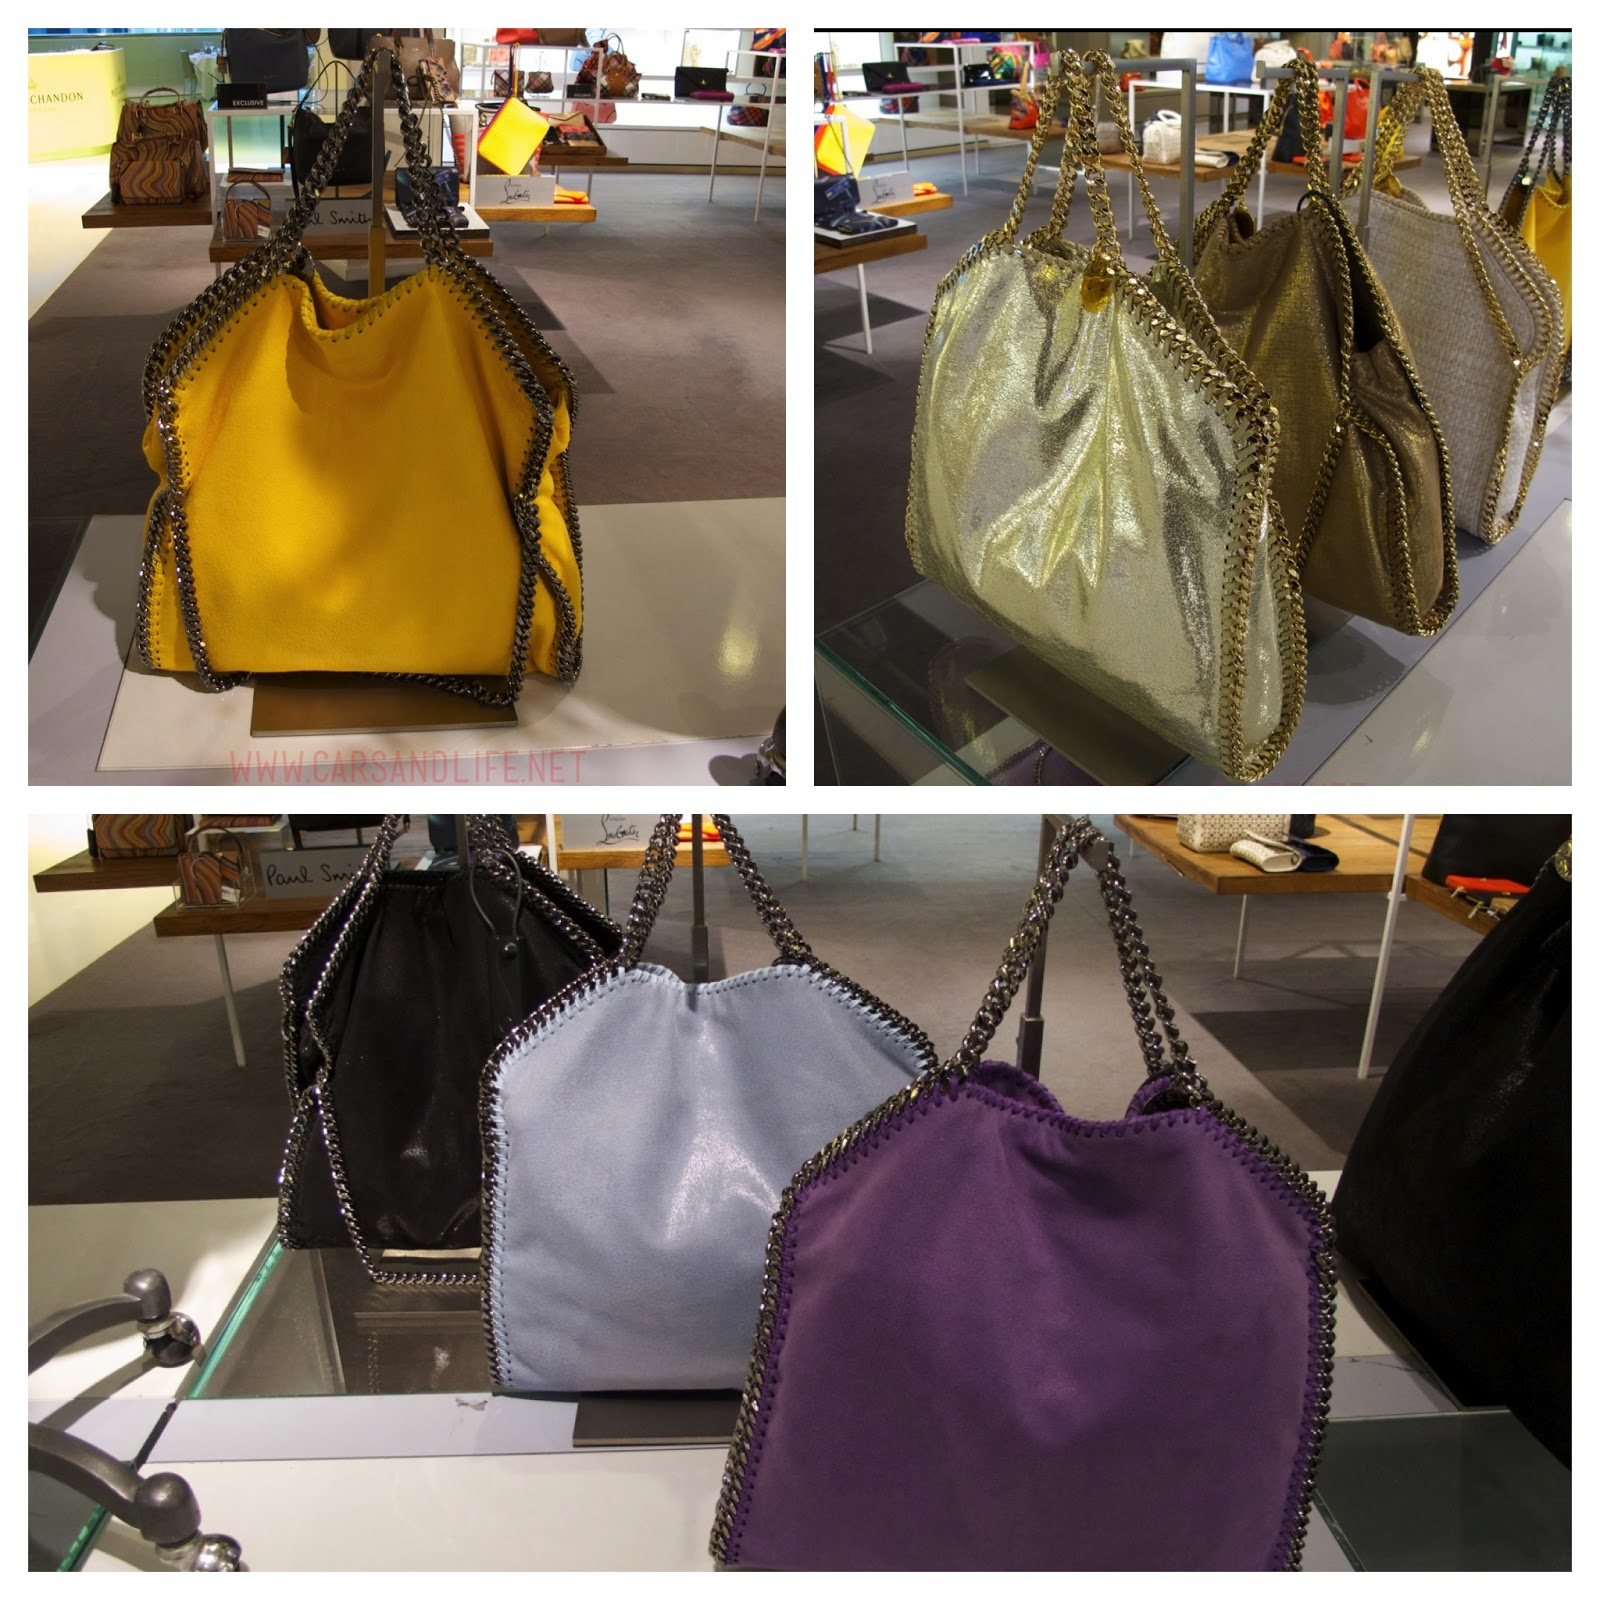 Stella McCartney Fallabella shoulder bags from Selfridges. Last week f09d2a8b6fce6